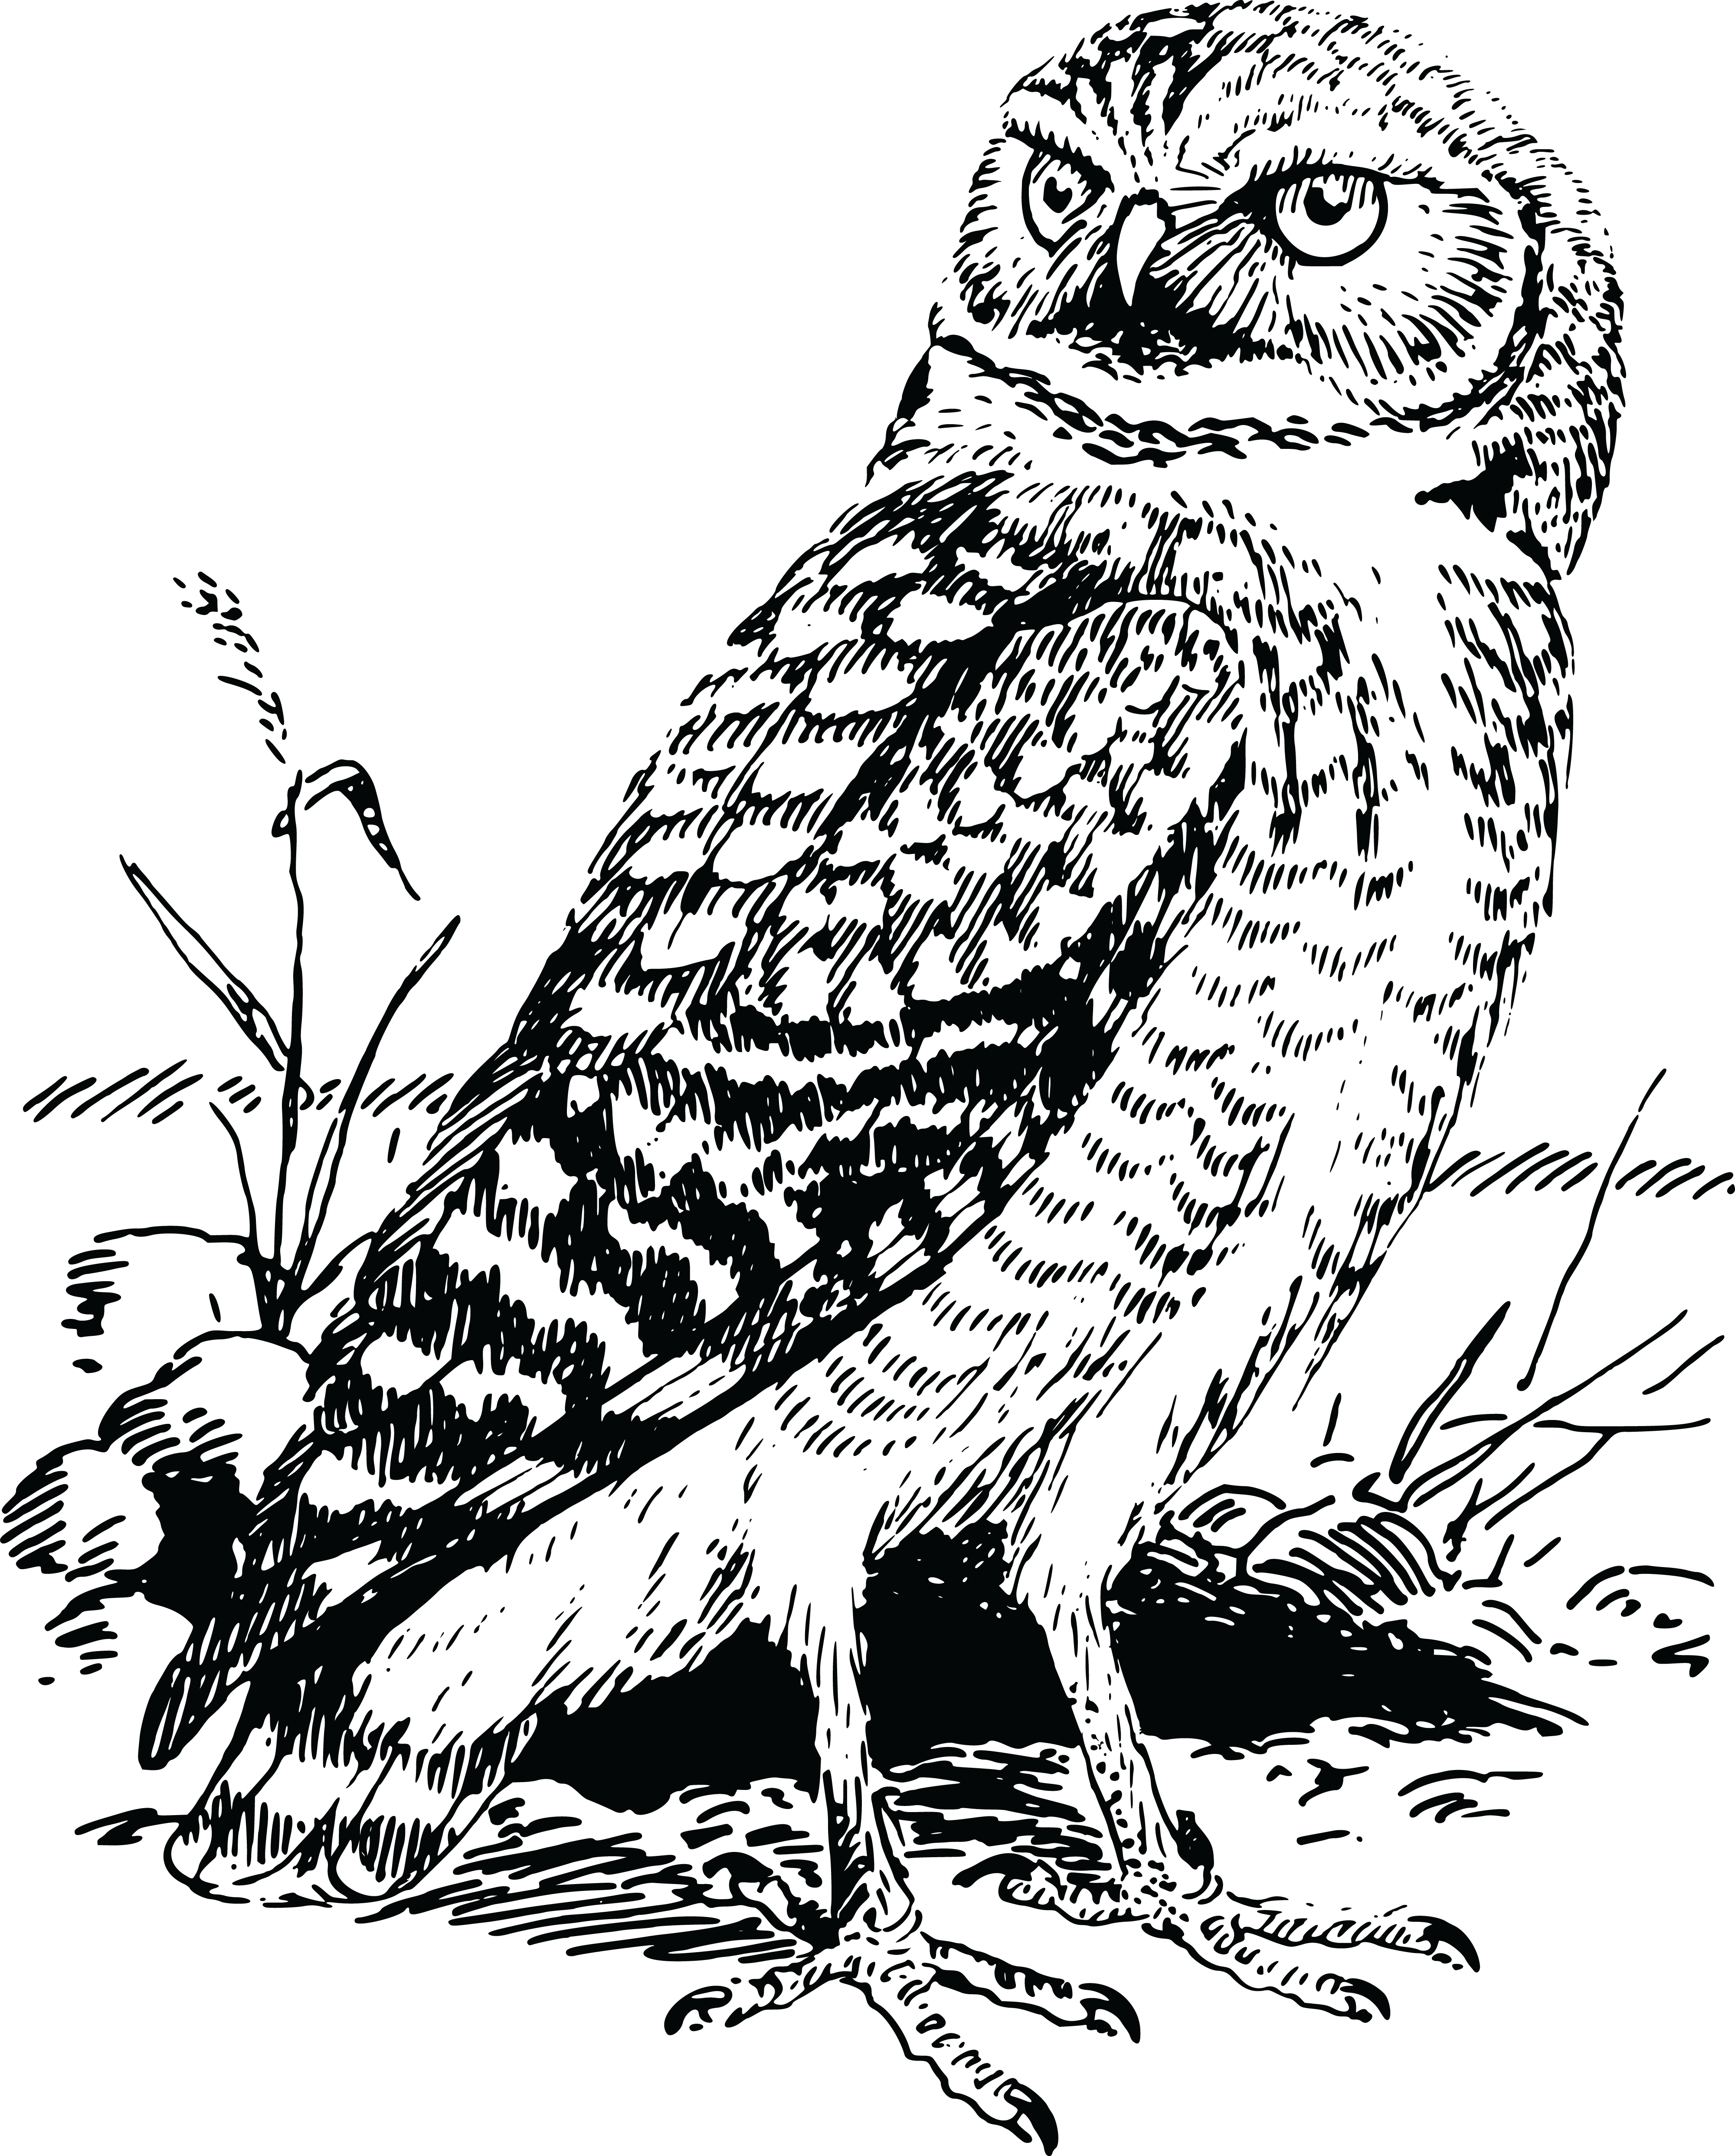 Owl Png Free Black And White Amp Free Owl Black And White